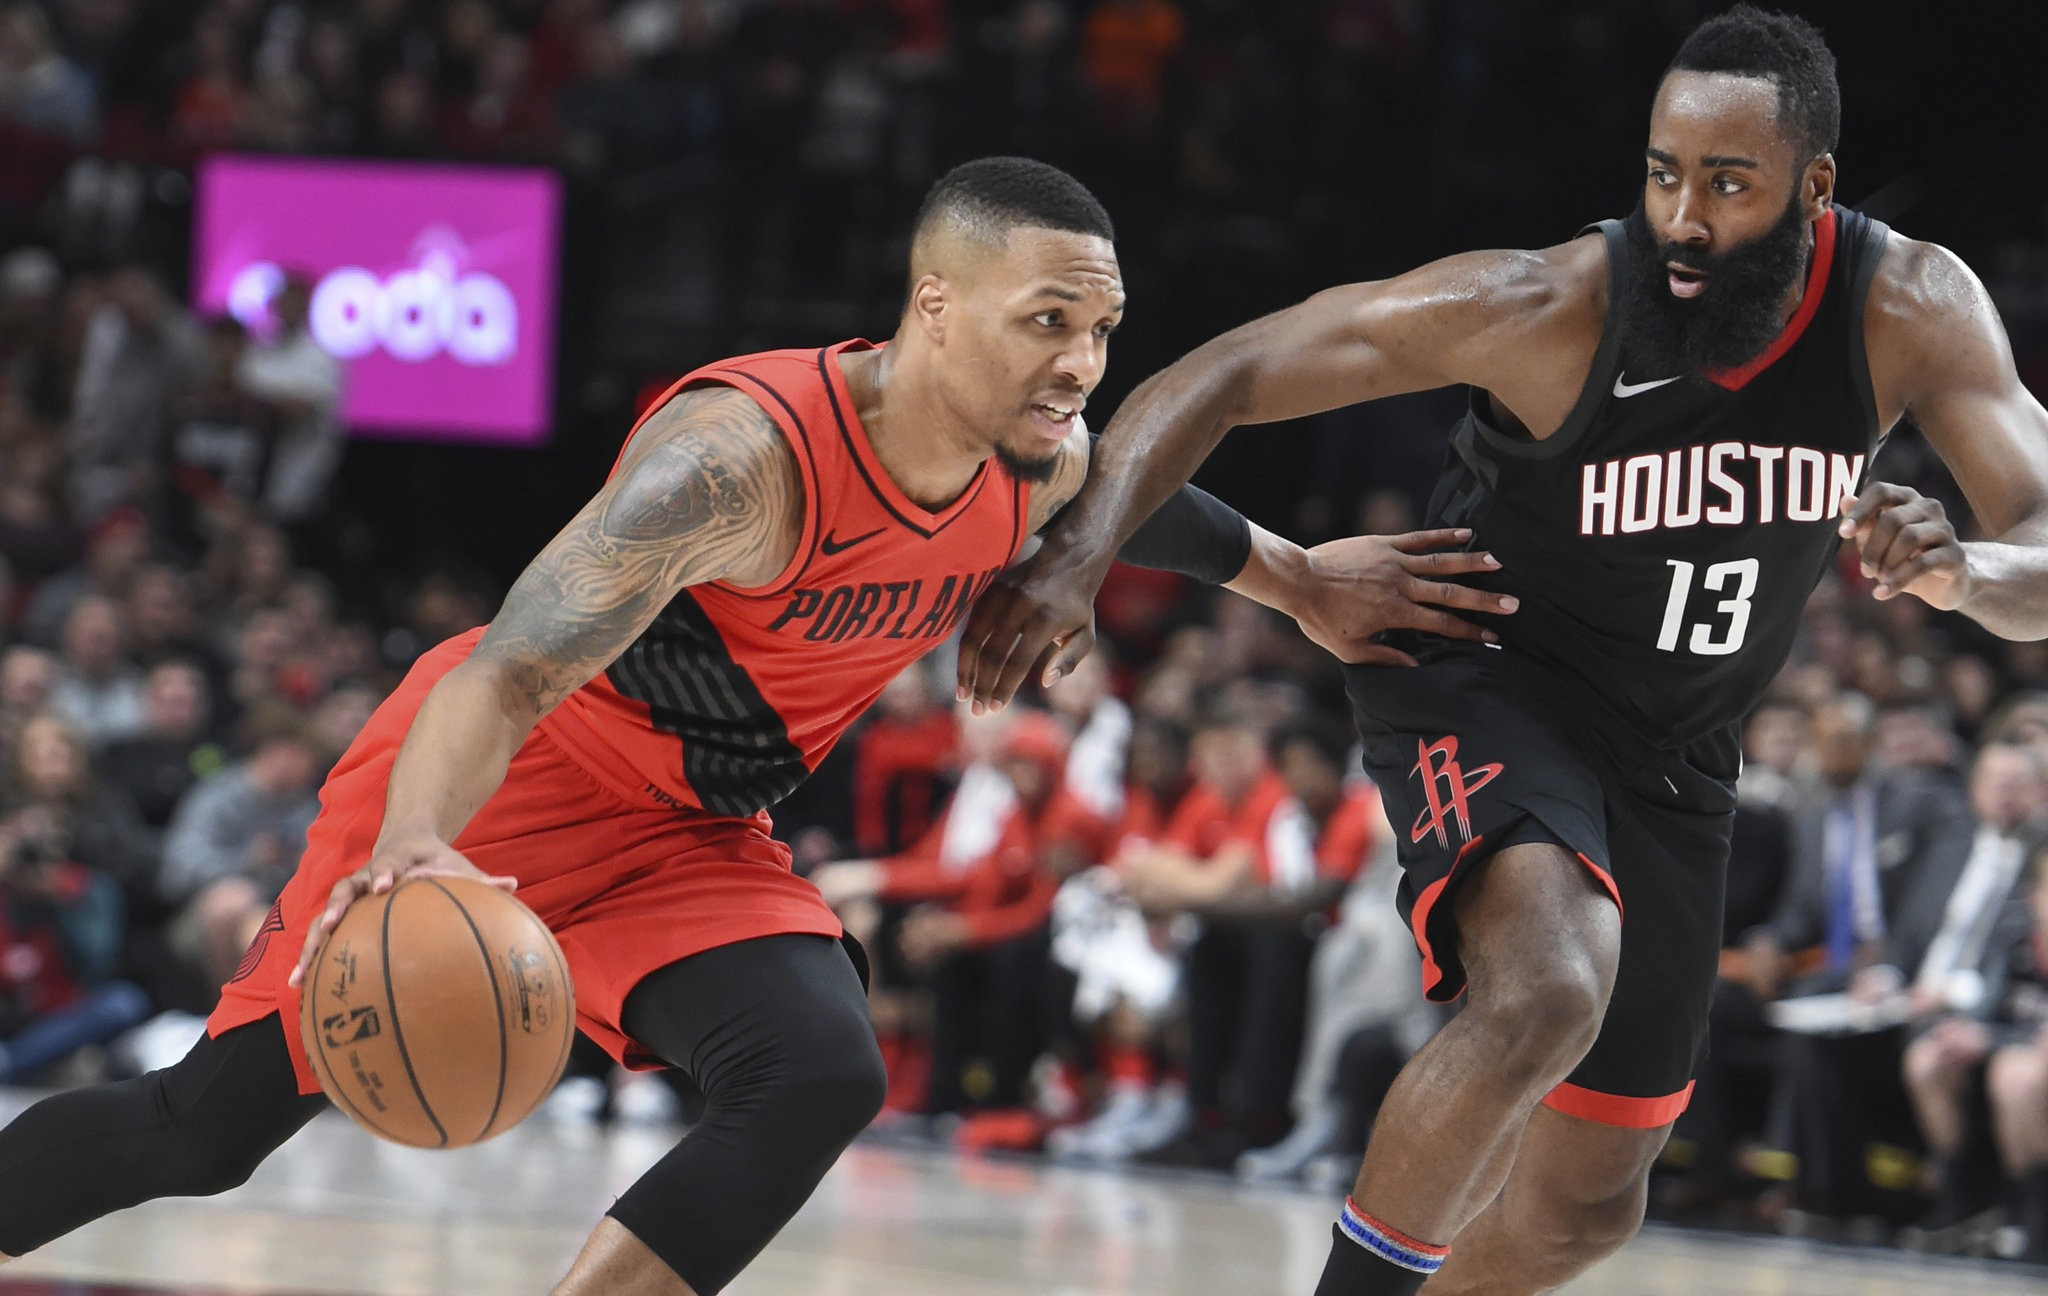 Houston Rockets vs. Portland Trail Blazers – NBA Game Day Preview: 08.04.2020